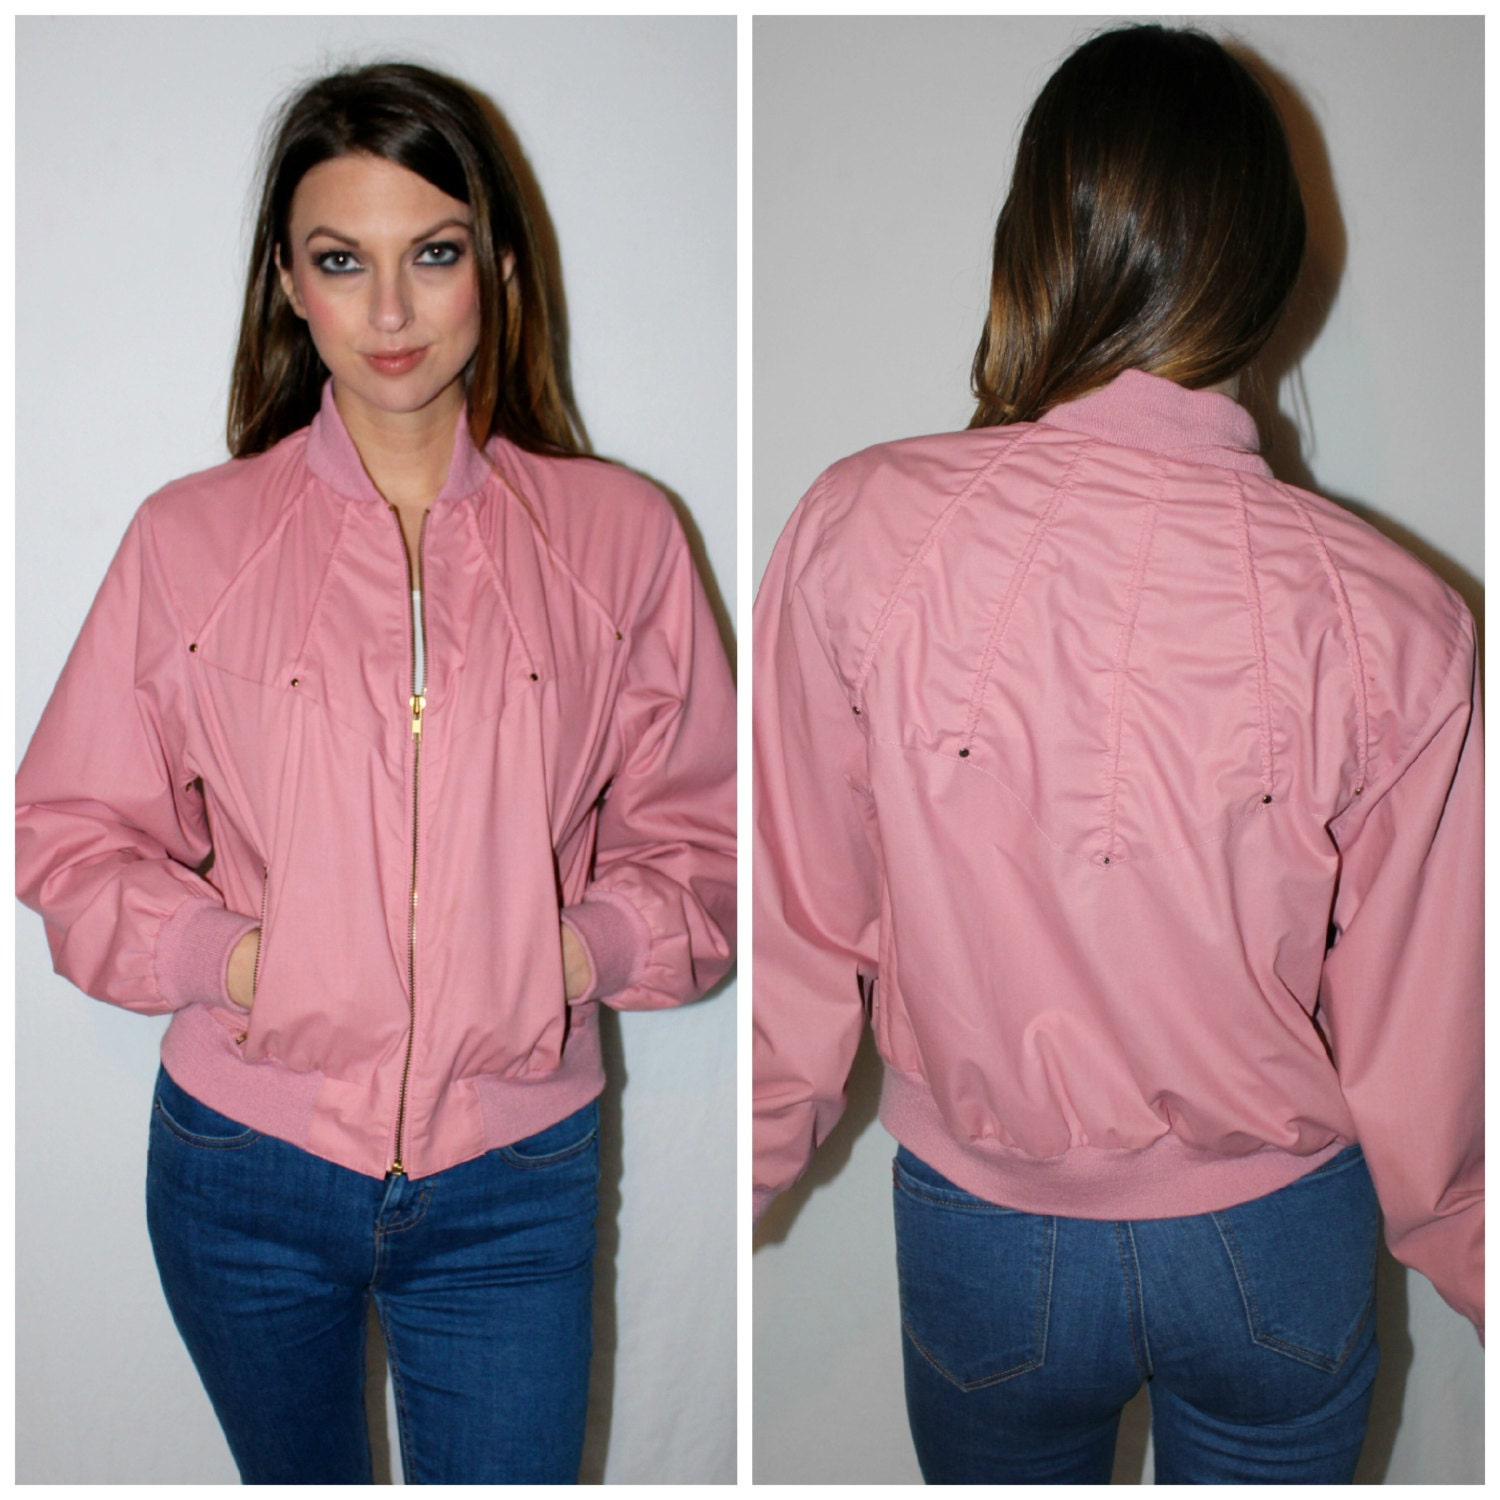 Vintage PINK LADIES Track Jacket 80s Dusty Rose Gold Zipper